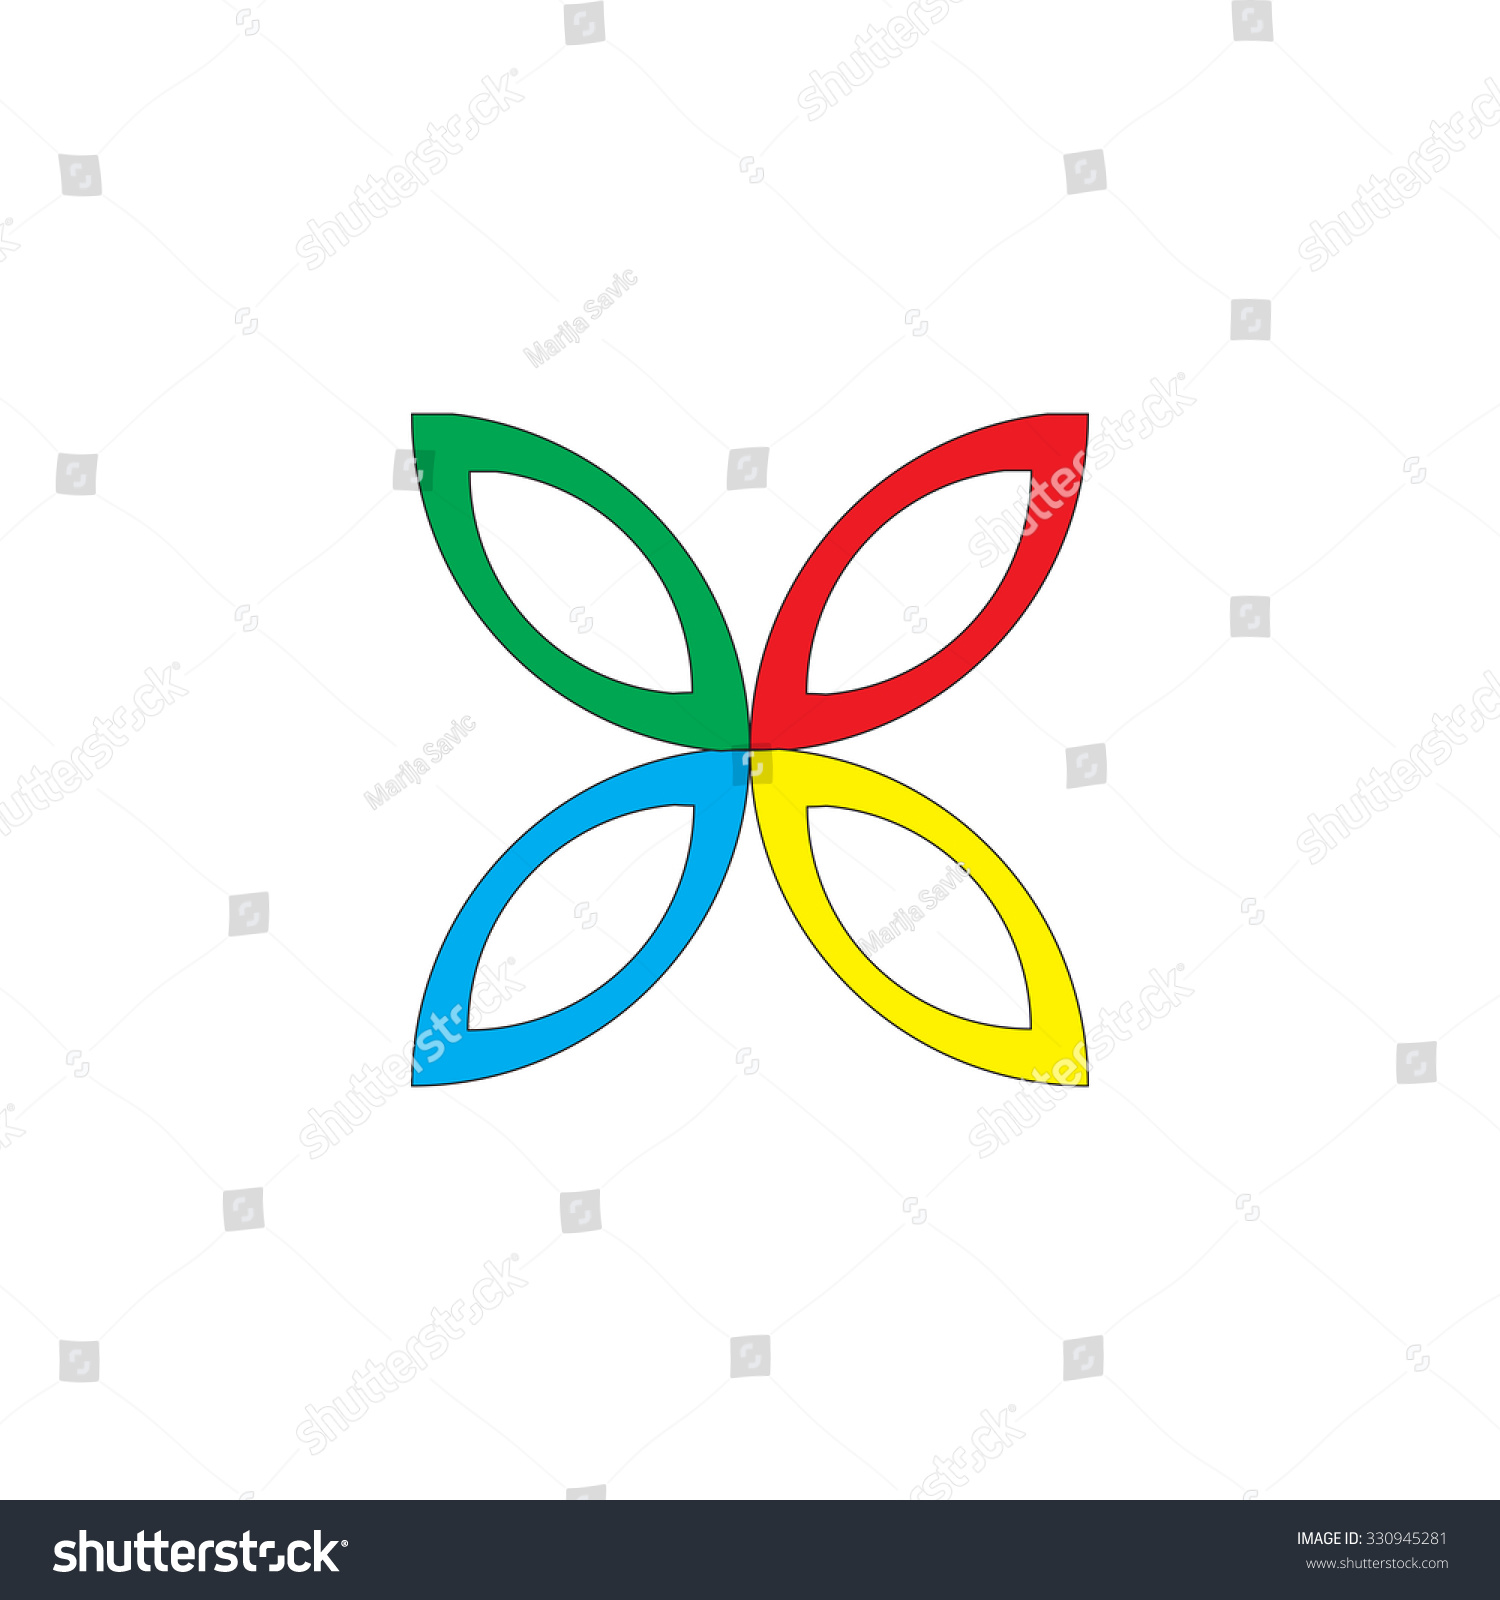 Four Flower Petals Green Red Blue Stock Vector Royalty Free